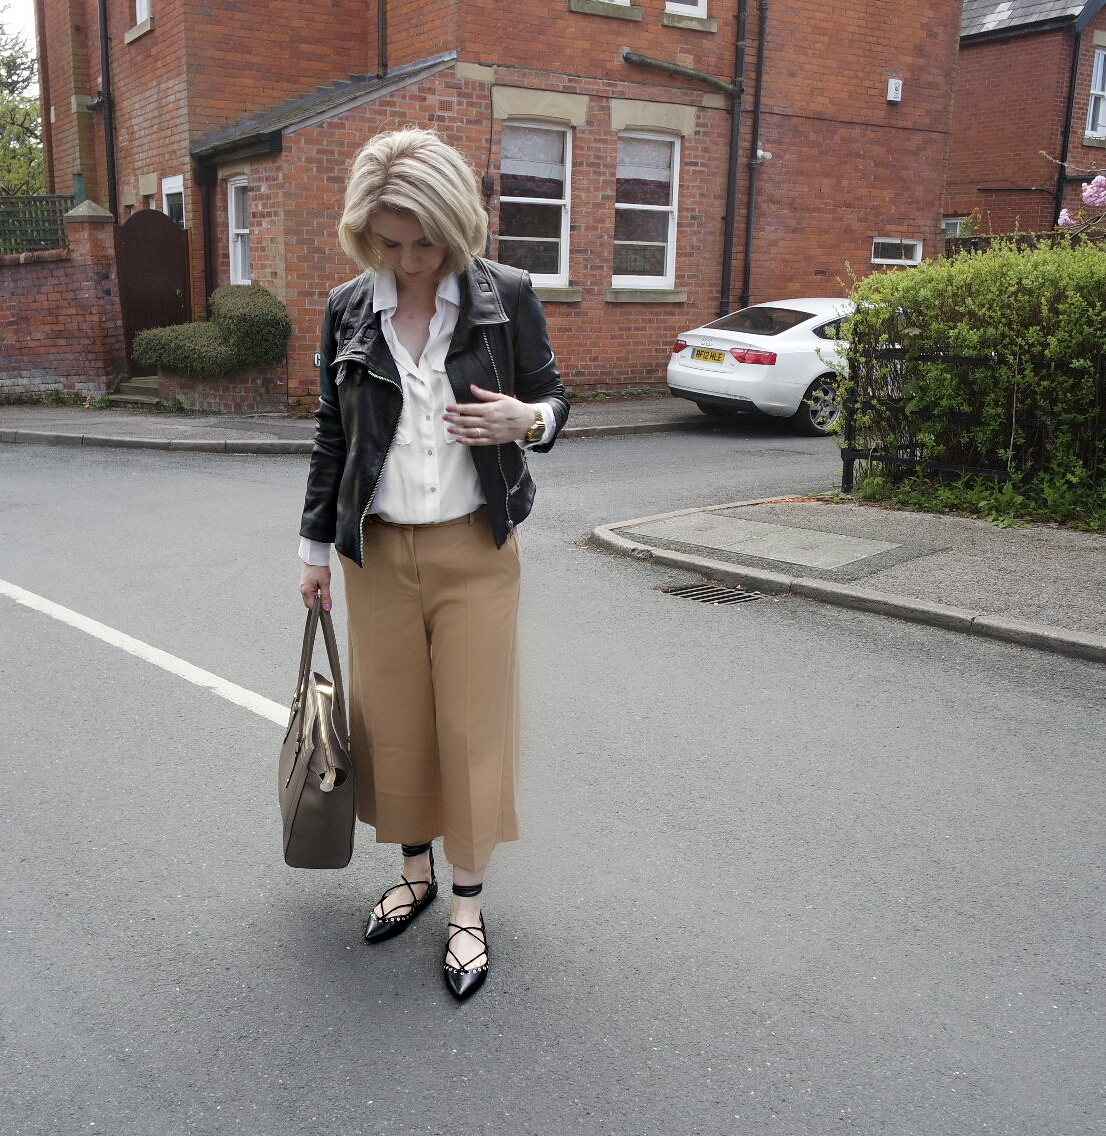 River Island Camel Culottes,Zara White Shirt,All Saints Leather Jacket,Zara Studded Pumps and Paul Costello